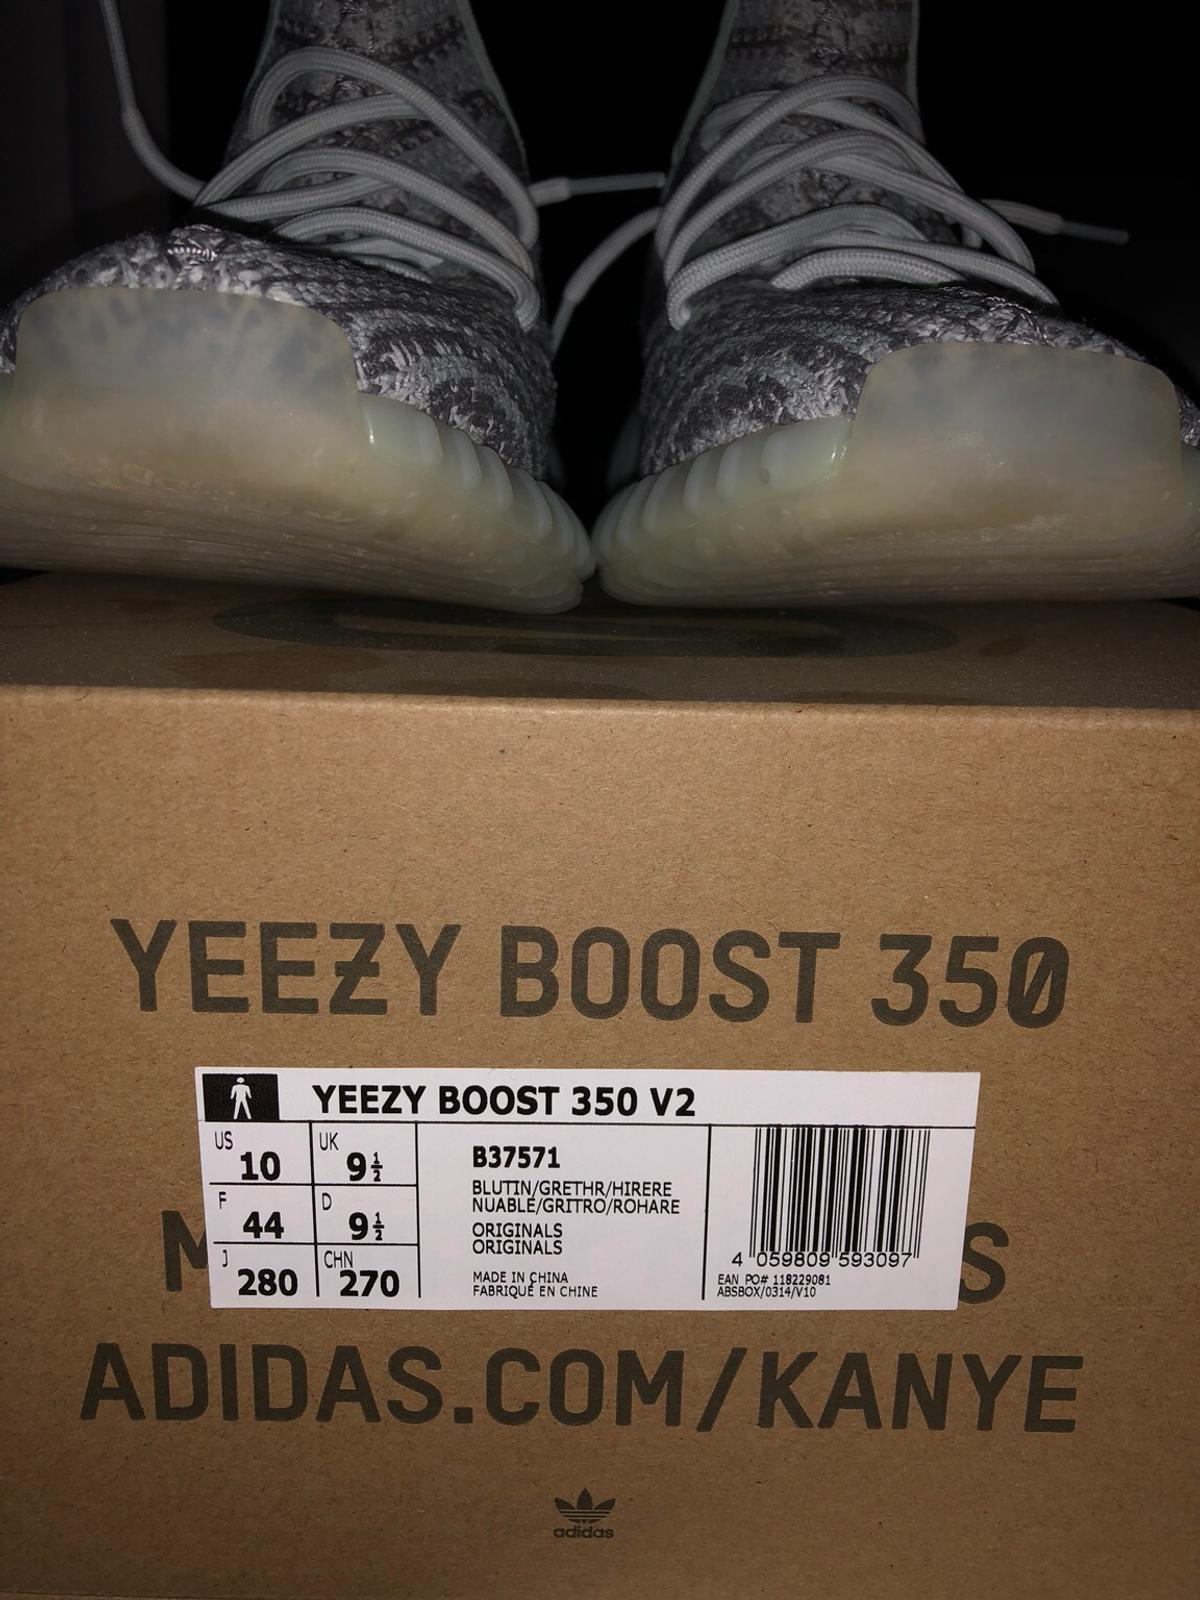 55c0bb477 Yeezy Boost 350 Blue Tint 44 in 1230 Wien for €240.00 for sale - Shpock